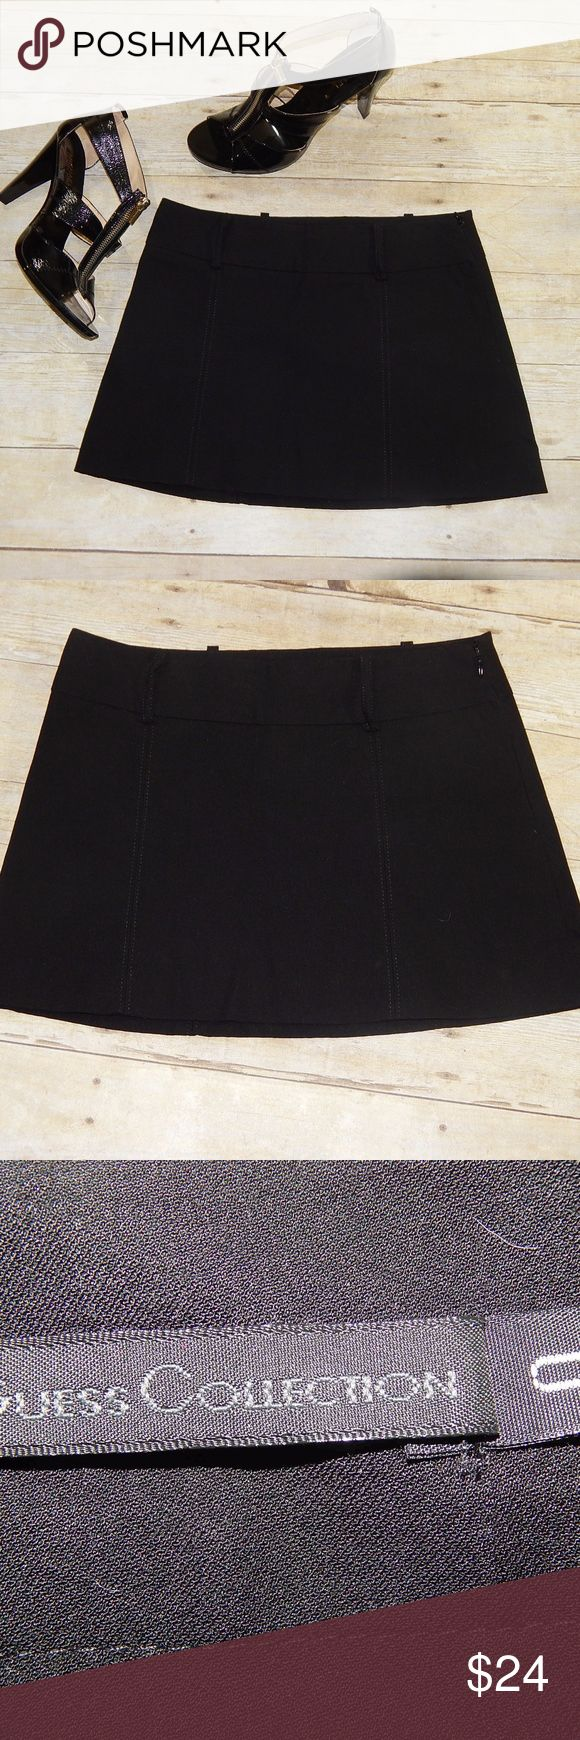 Guess Collection Black Mini Skirt Size 0 Guess Collection Mini Skirt Size 0  Black Has belt loops for any belt you would like to style with it 74% rayon, 22% nylon, 4% spandex Measurements Length 12 Waist laid flat 13.75 Worn once All items are from a non-smoking home Any questions, please ask Bundles and offers welcome Guess Skirts Mini